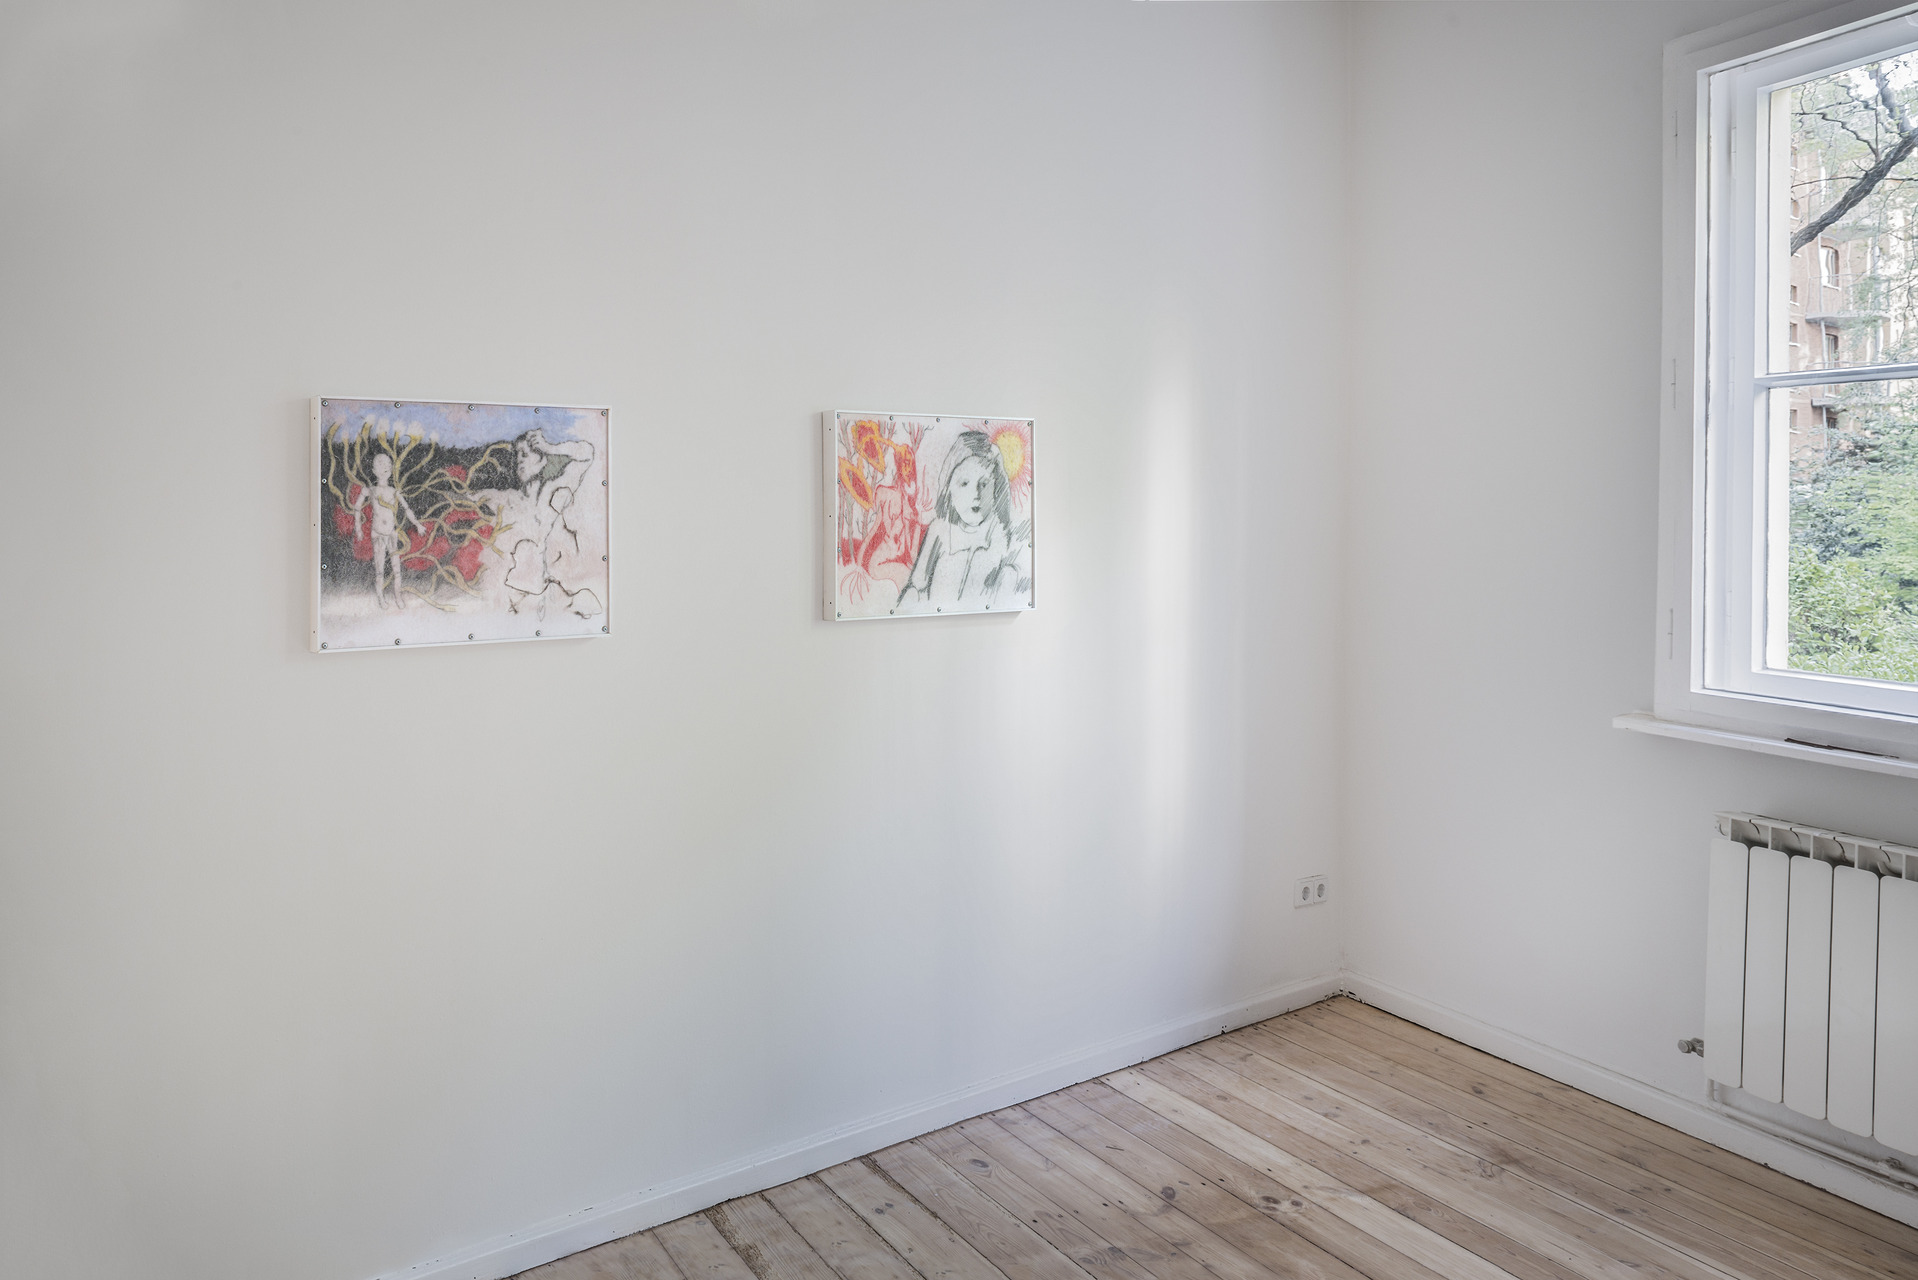 AH_Installation view_Softer Than Stone And Sick in your Mind_2015_Photo Credit_Joachim Schulz_Courtesy_Croy Nielsen_1